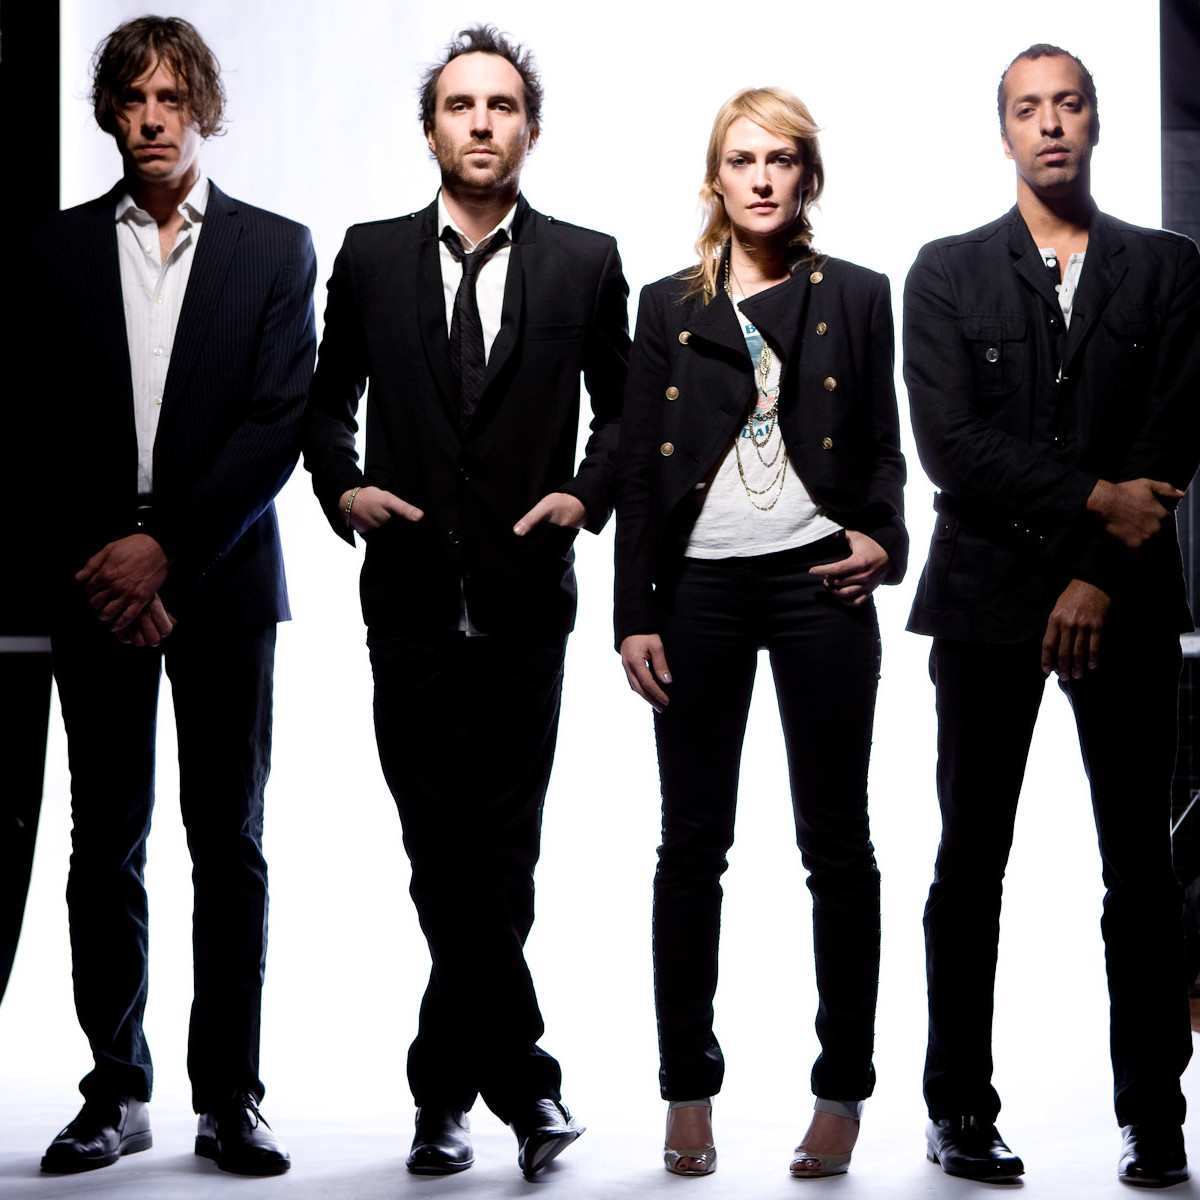 News_Metric_band members_Michael D. Clark_112709